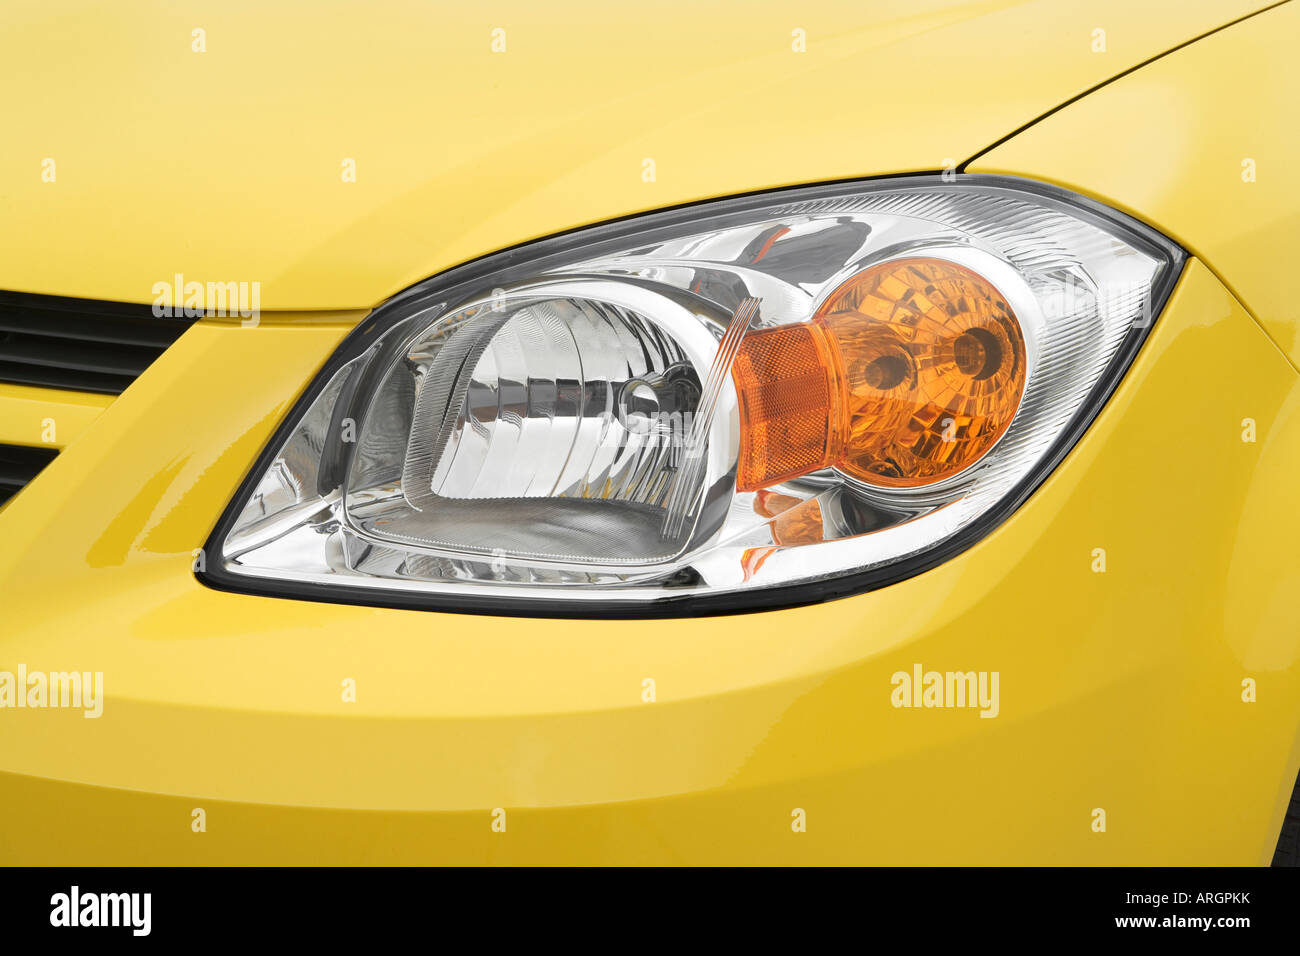 2007 Chevrolet Cobalt LS in Yellow - Headlight - Stock Image